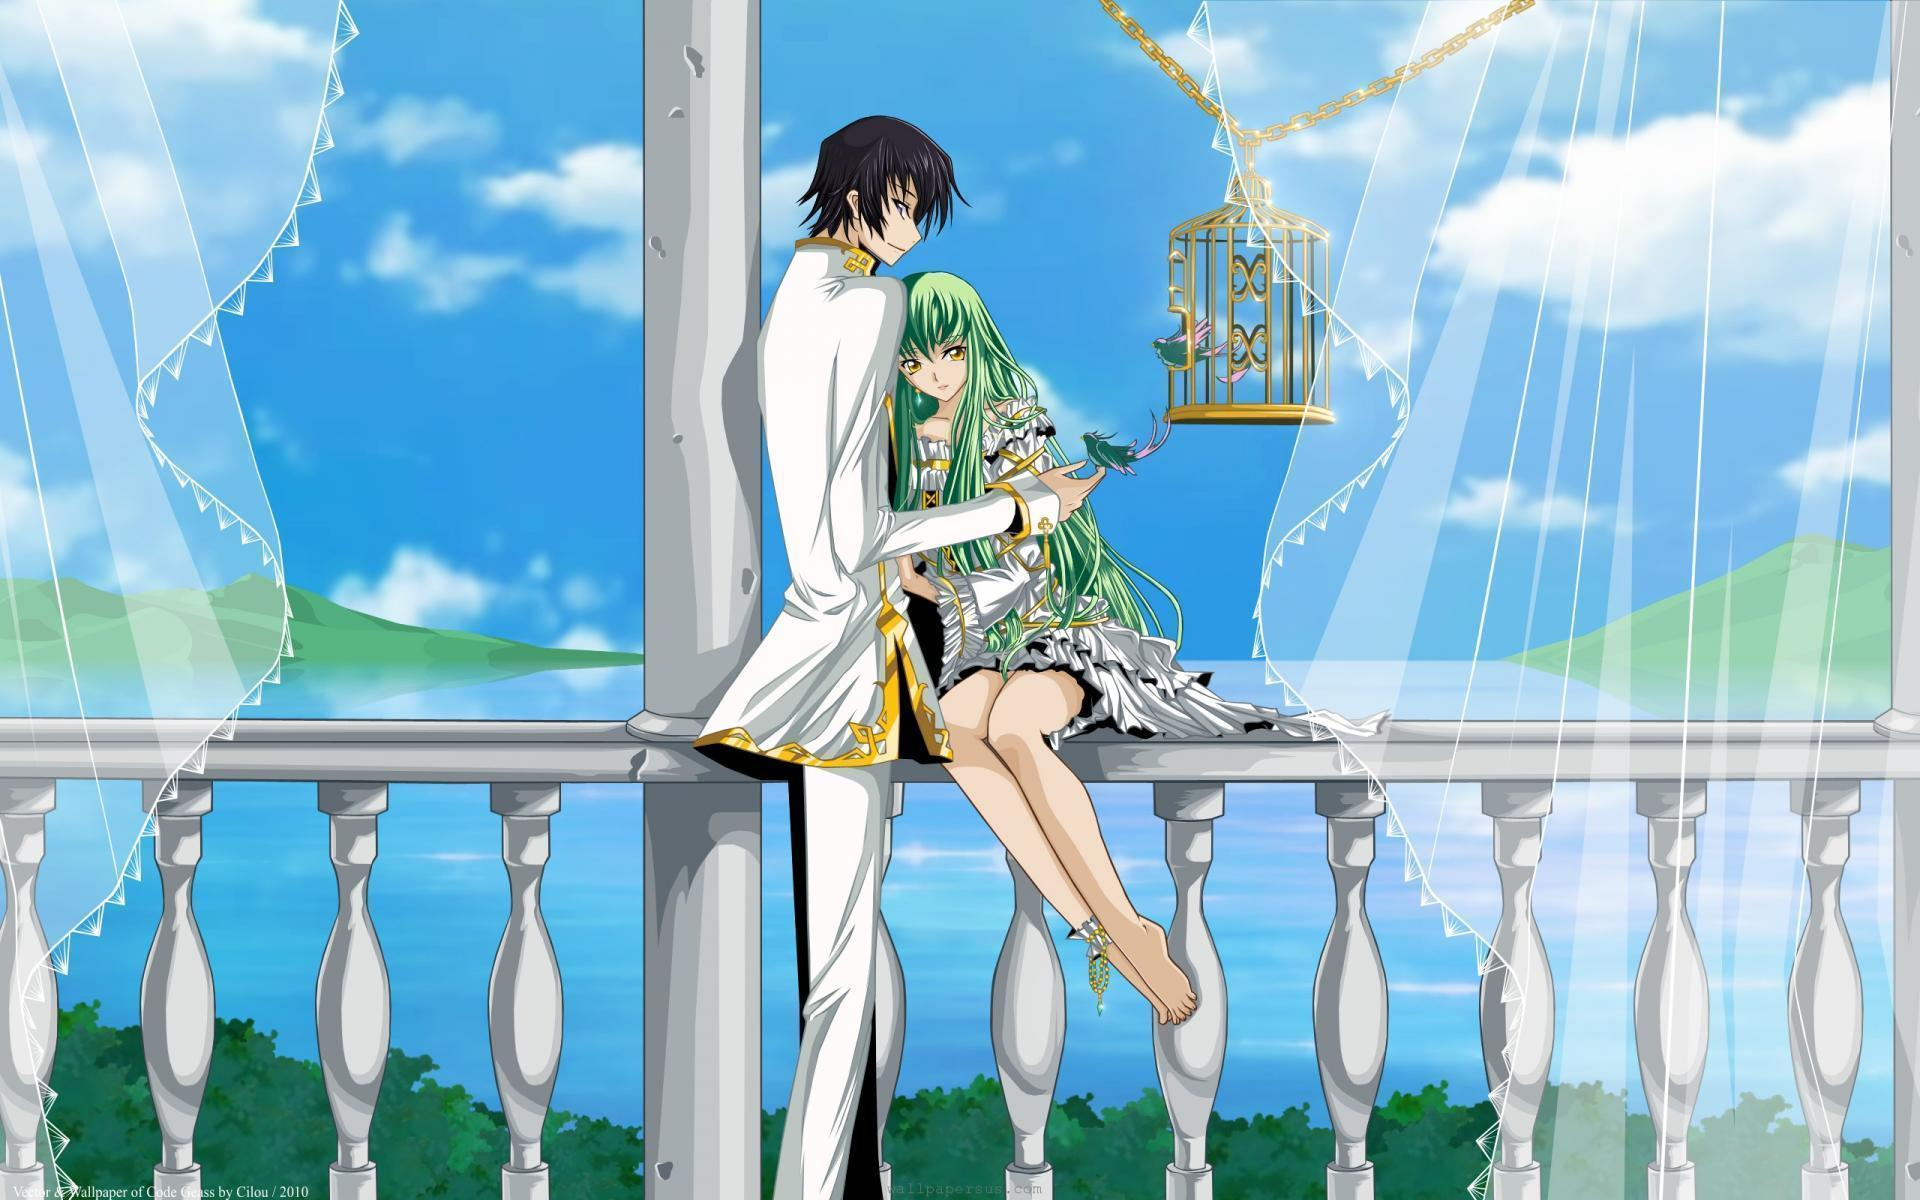 Animated Love couple Wallpaper In Hd : cute Anime couple Wallpapers - Wallpaper cave